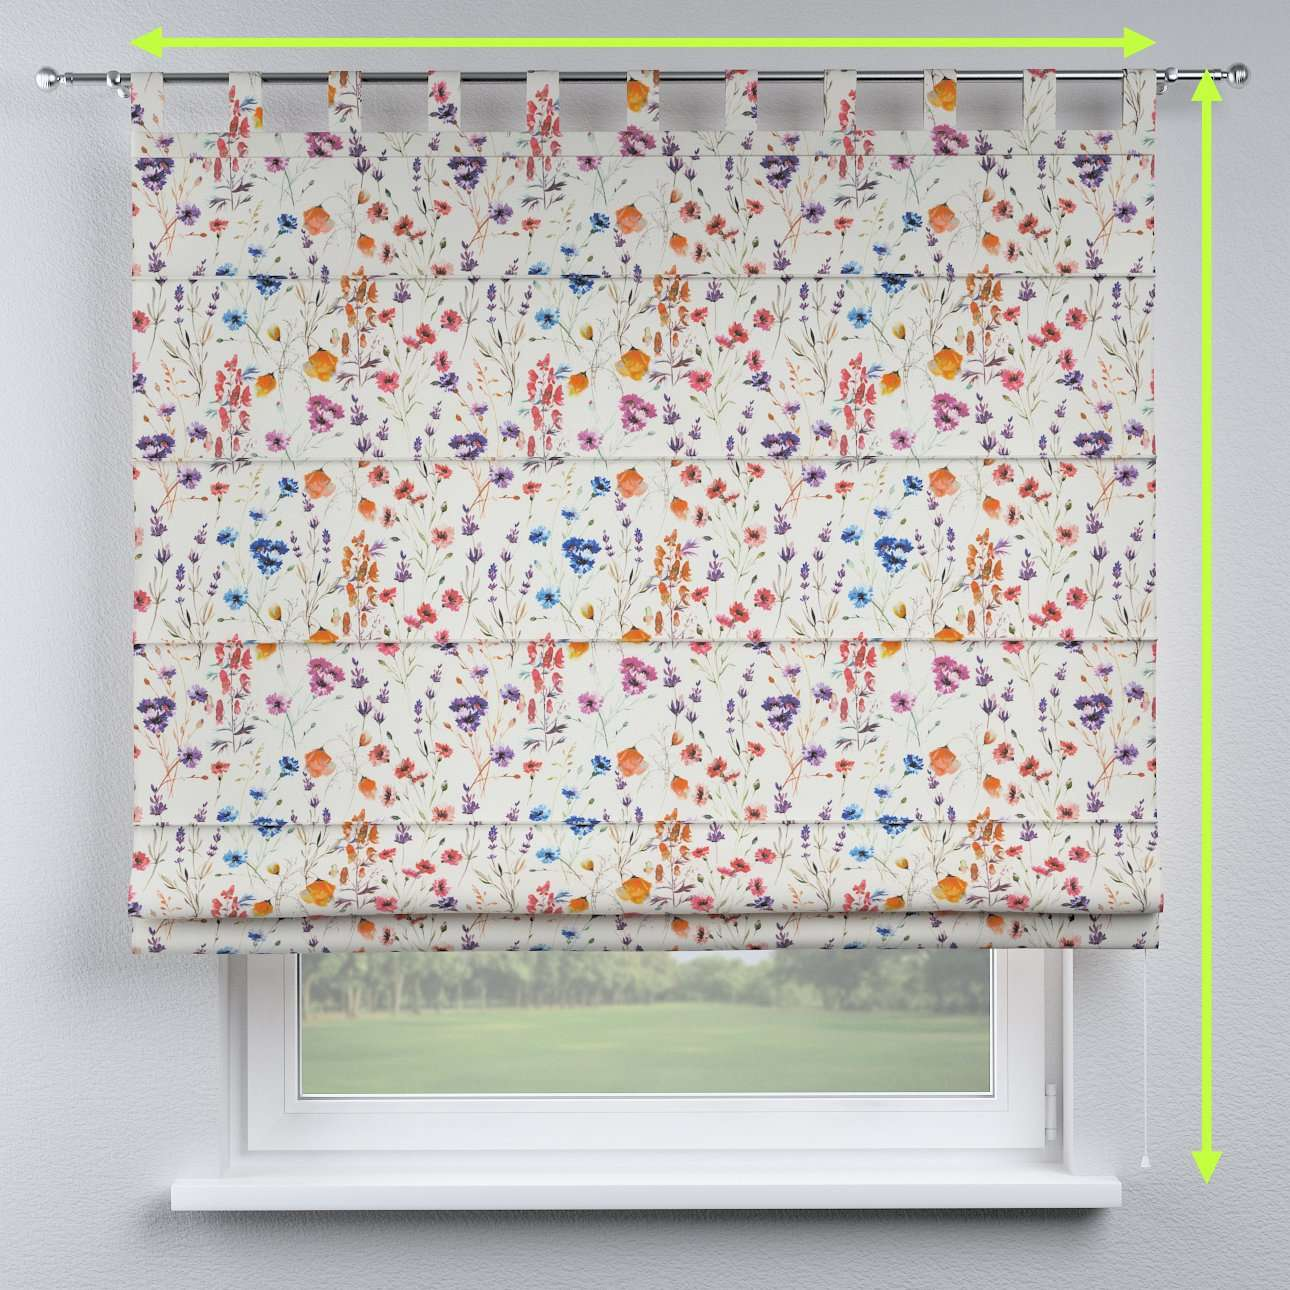 Verona tab top roman blind in collection Flowers, fabric: 141-53